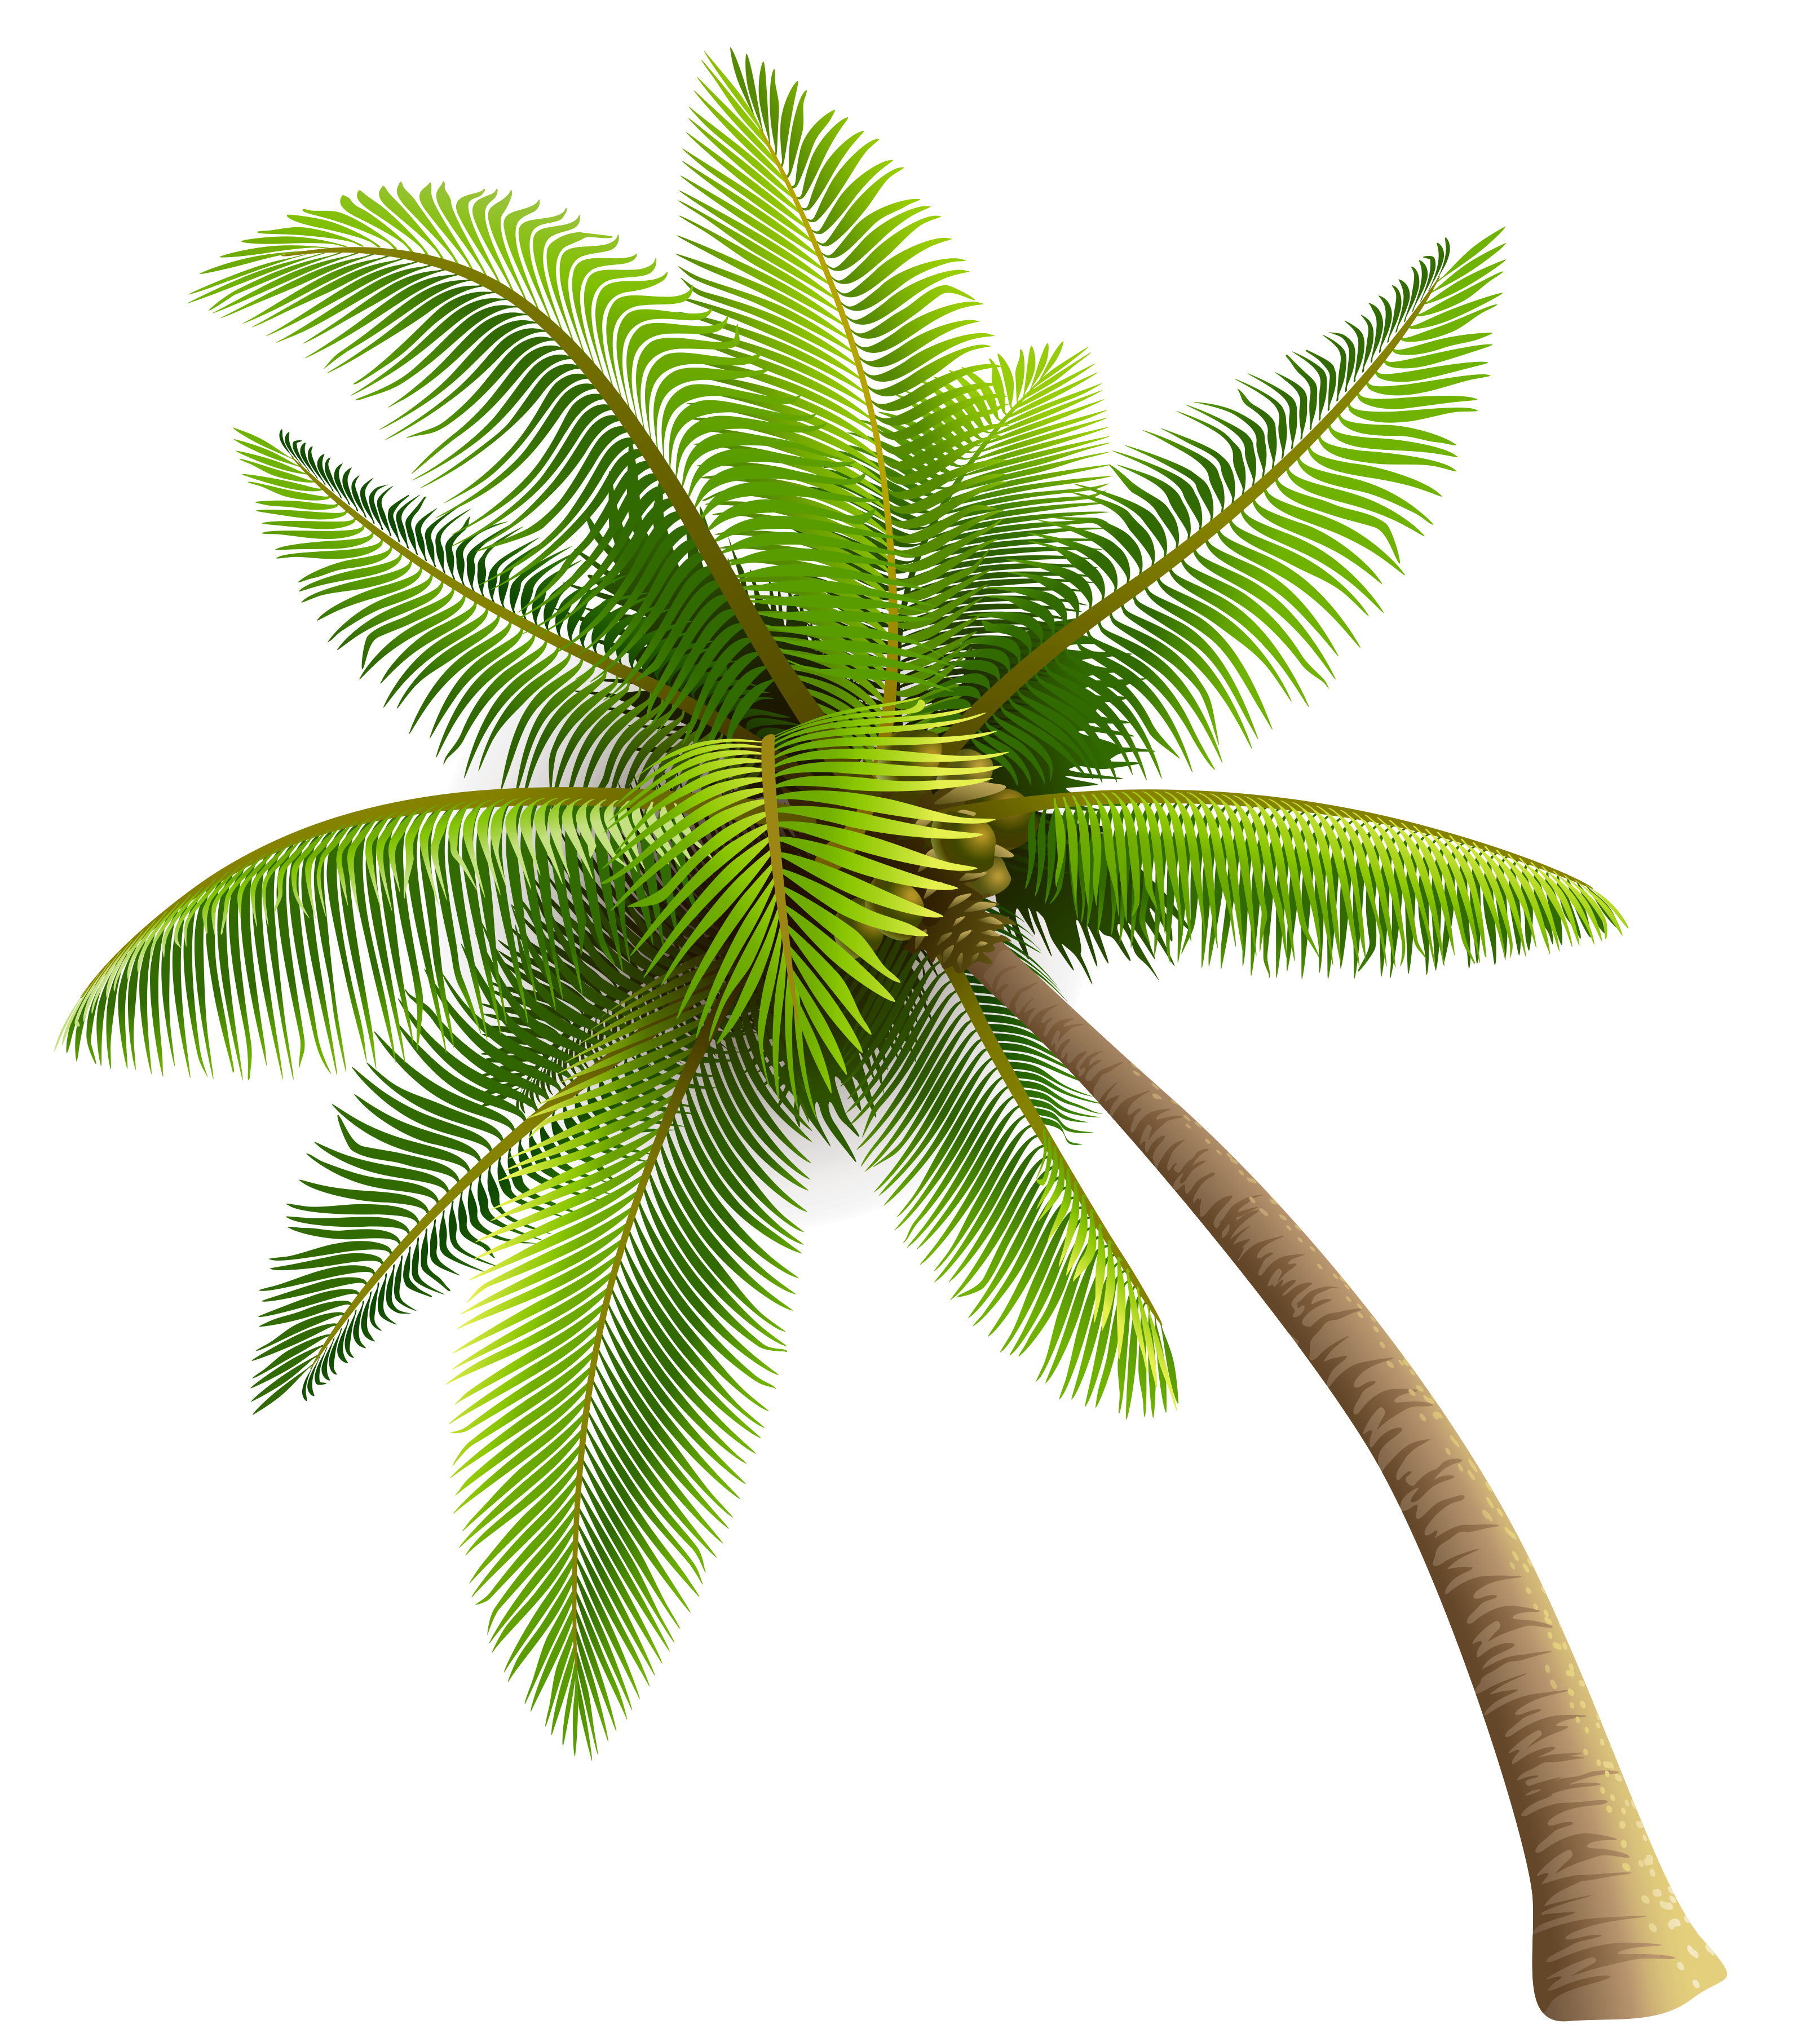 Palm green clipart #11